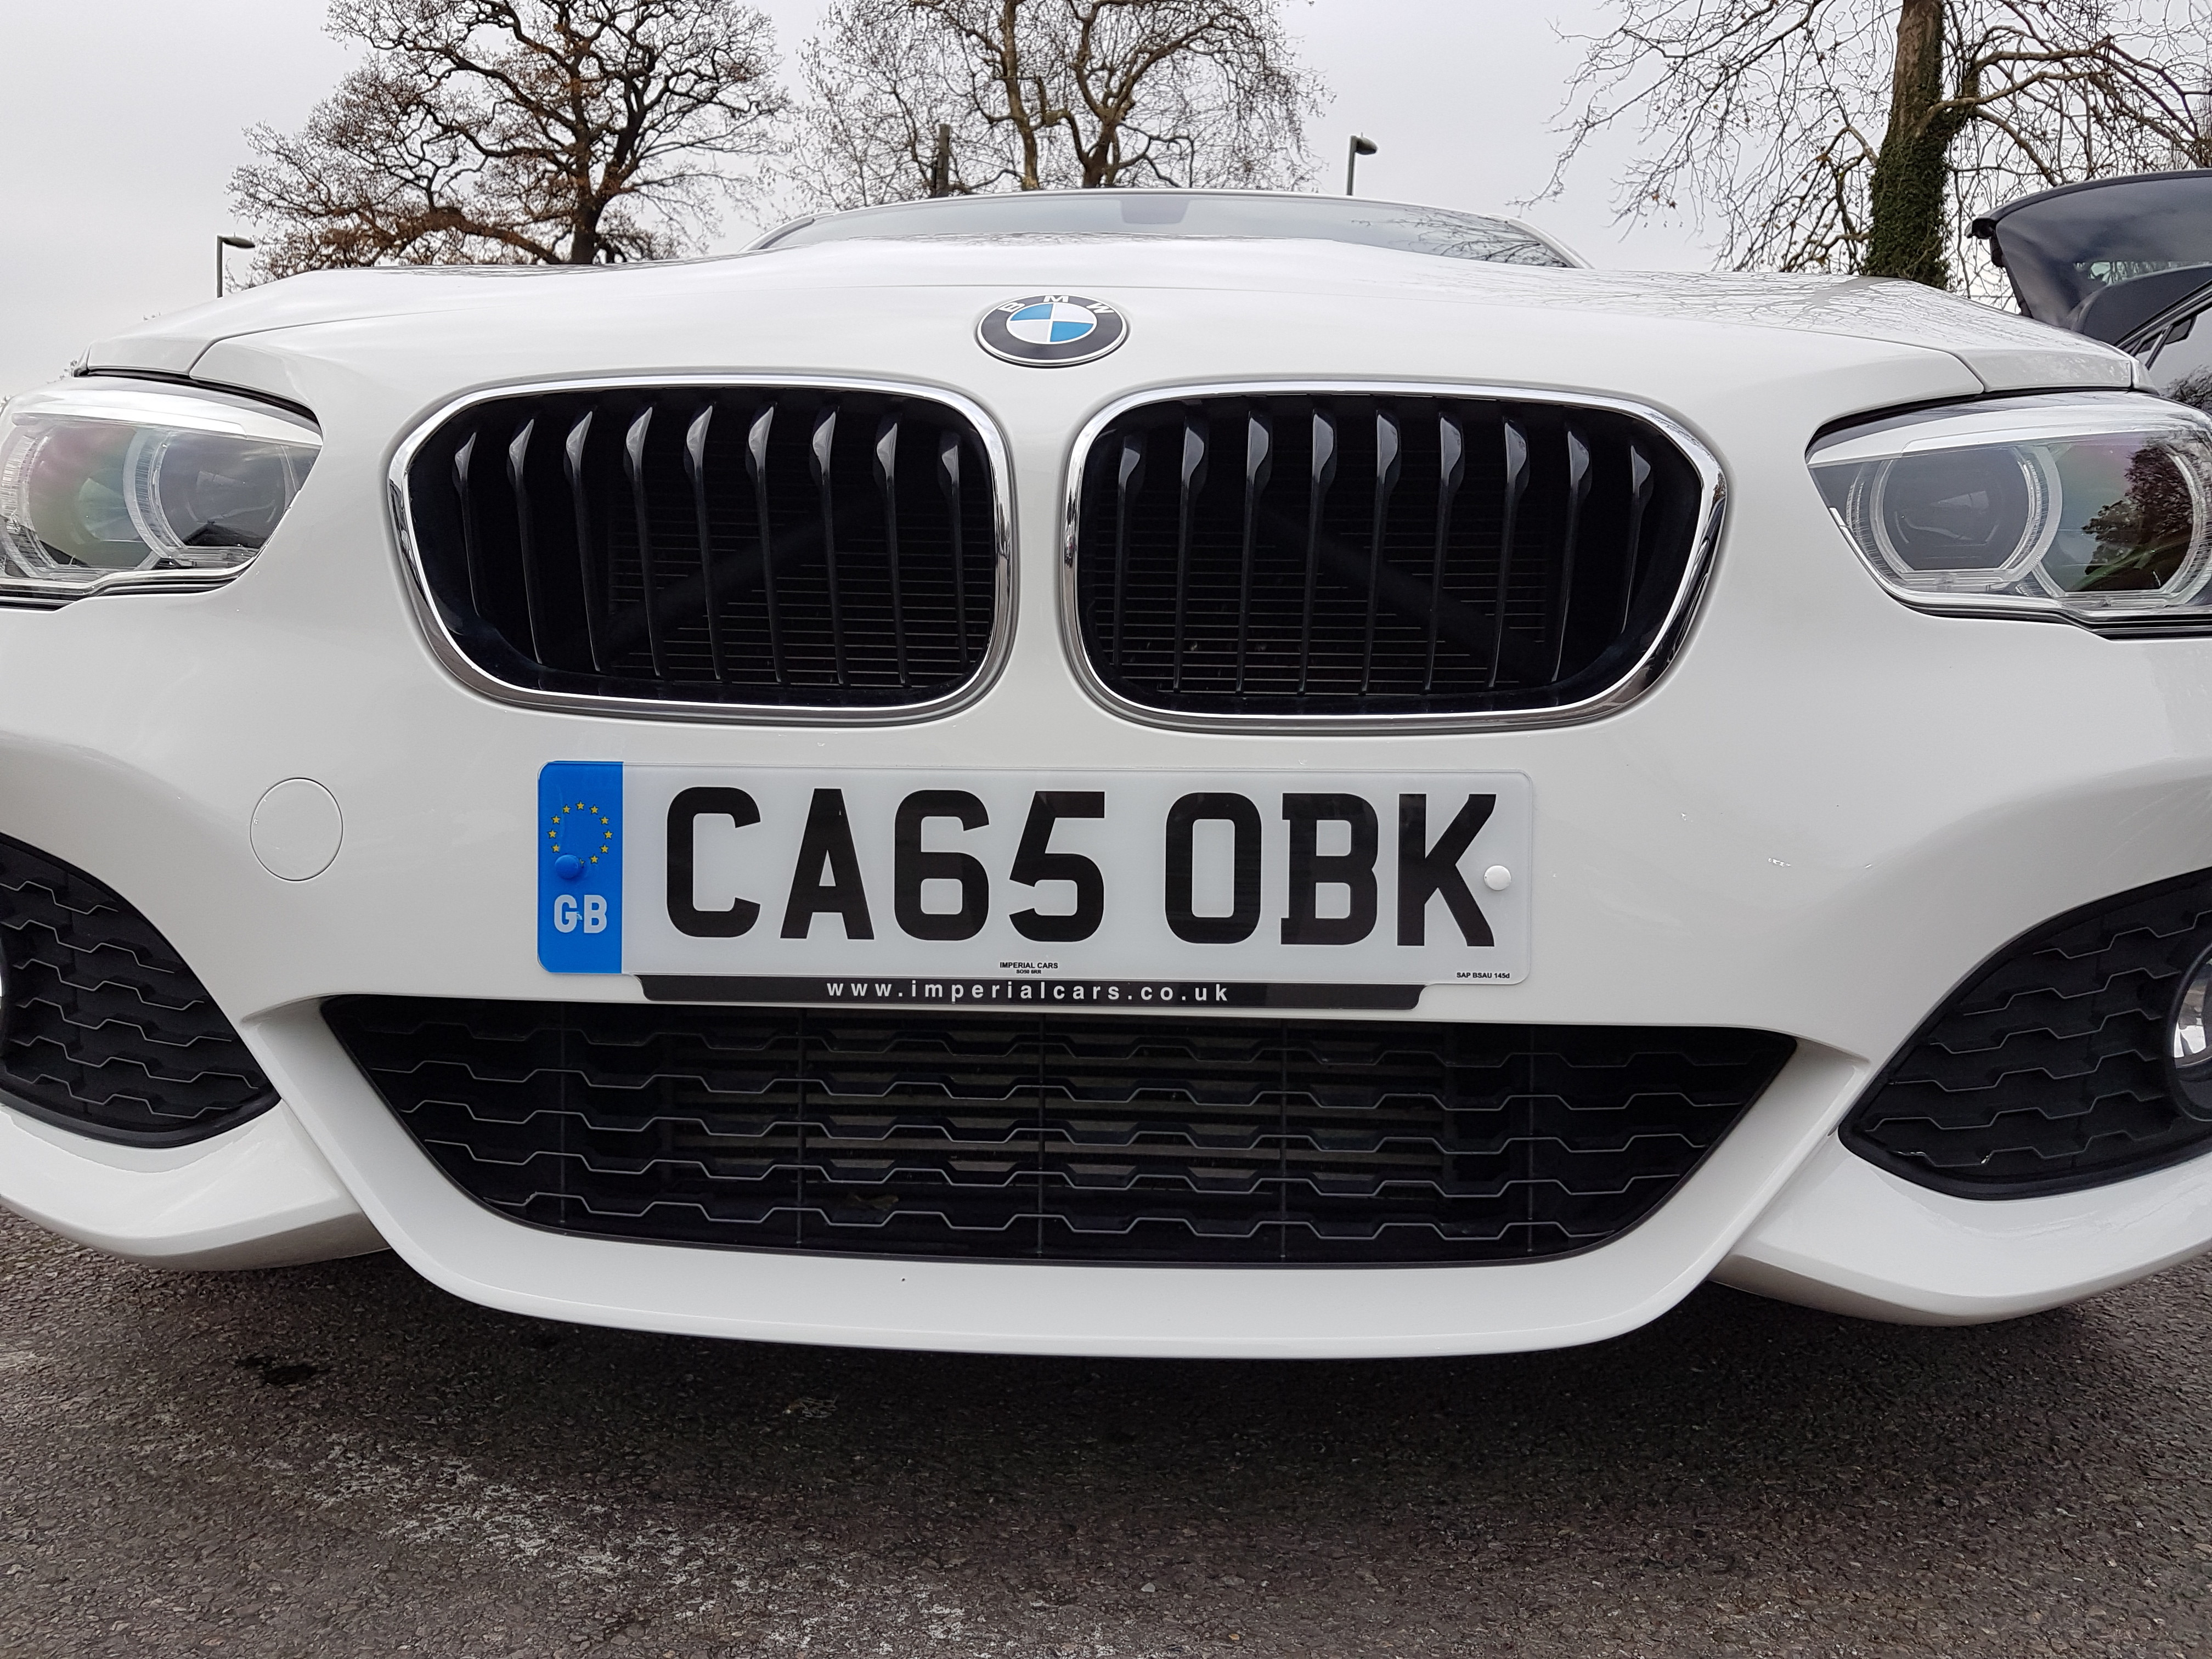 Used BMW 1 Series 116d Sport White Hatchback For Sale in